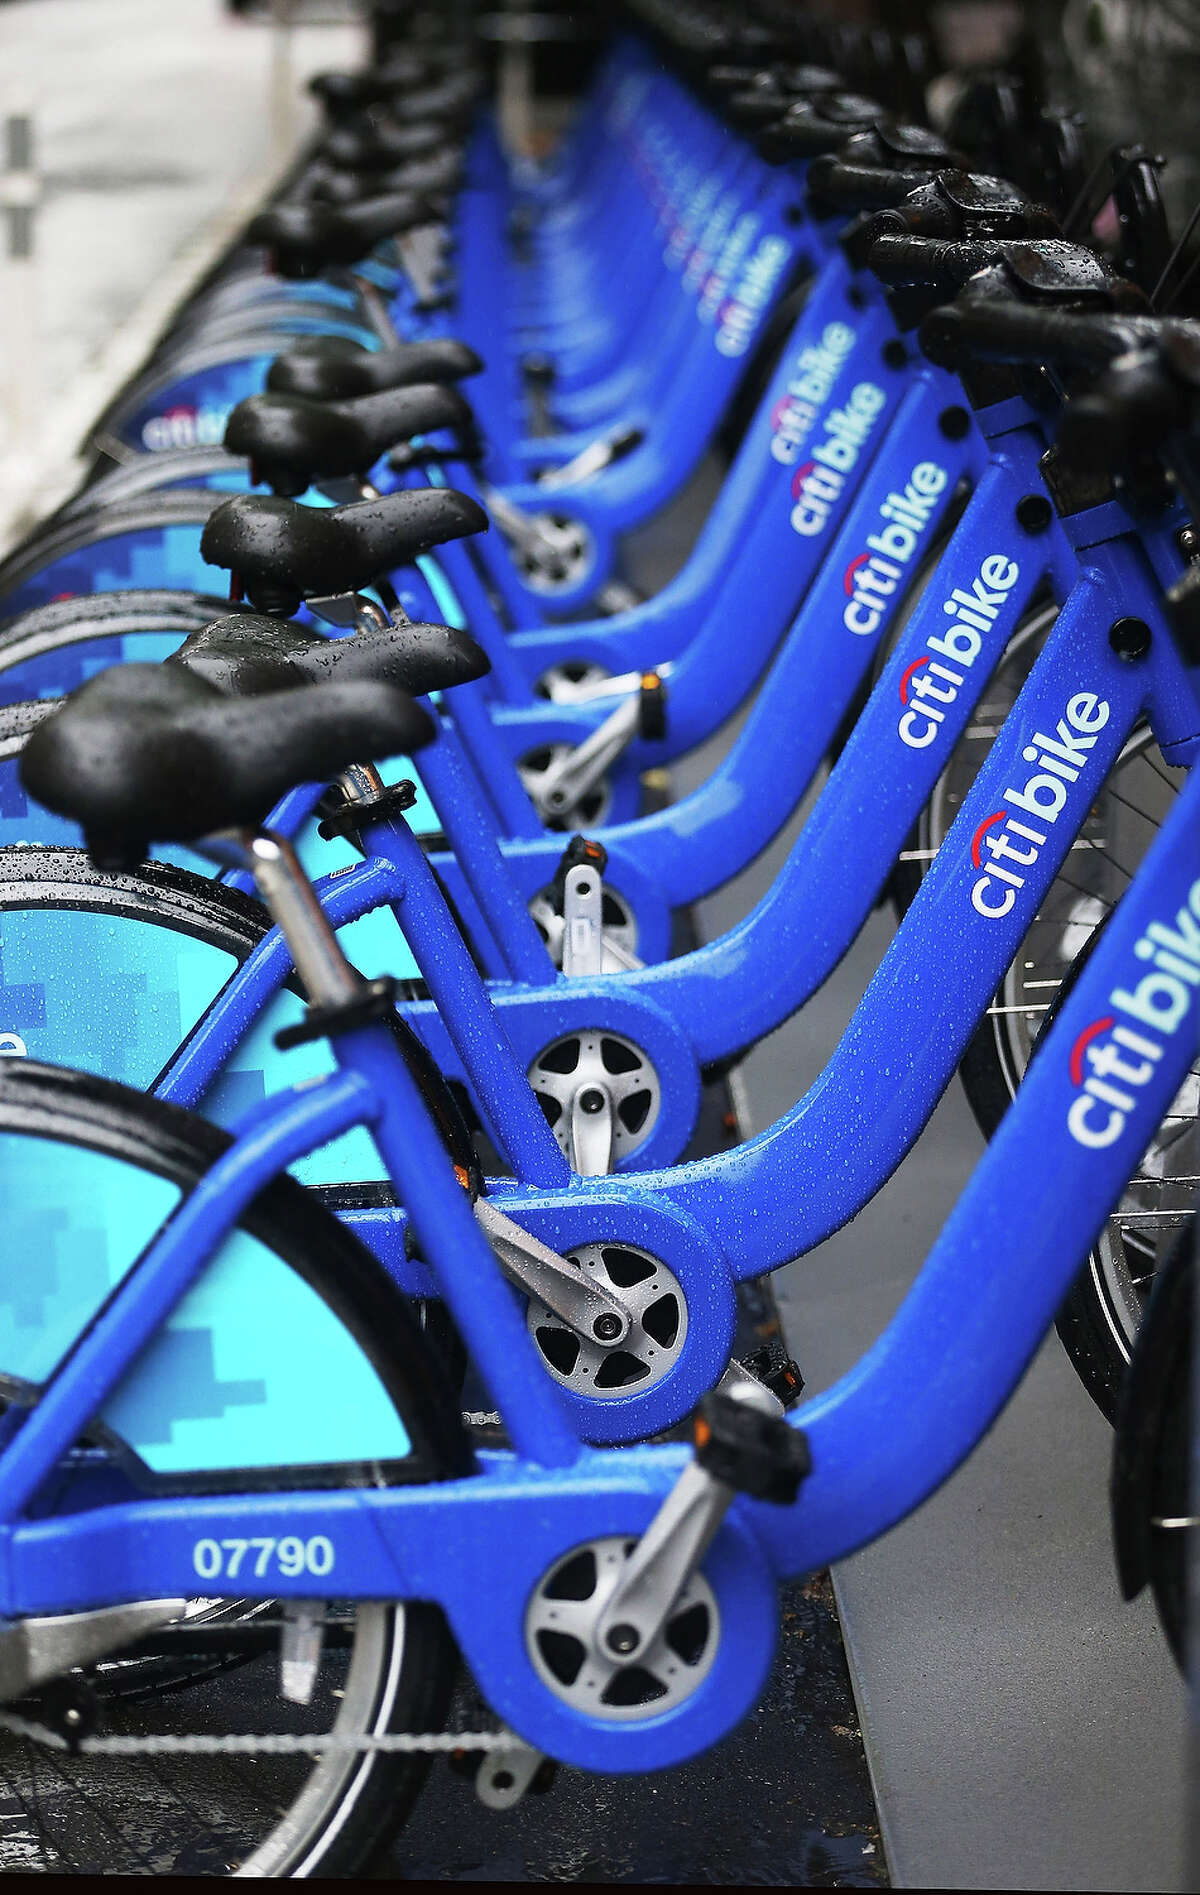 Citi Bikes sit on a rack in Manhattan's East Village the day after the nation's largest bike share program got underway on May 28, 2013 in New York City. The system provides 6,000 bicycles available for riders at docking stations located in certain parts of the city. About 15,000 people have already signed up for the controversial system, which is sponsored by Citibank and is the largest bike share program in the country.